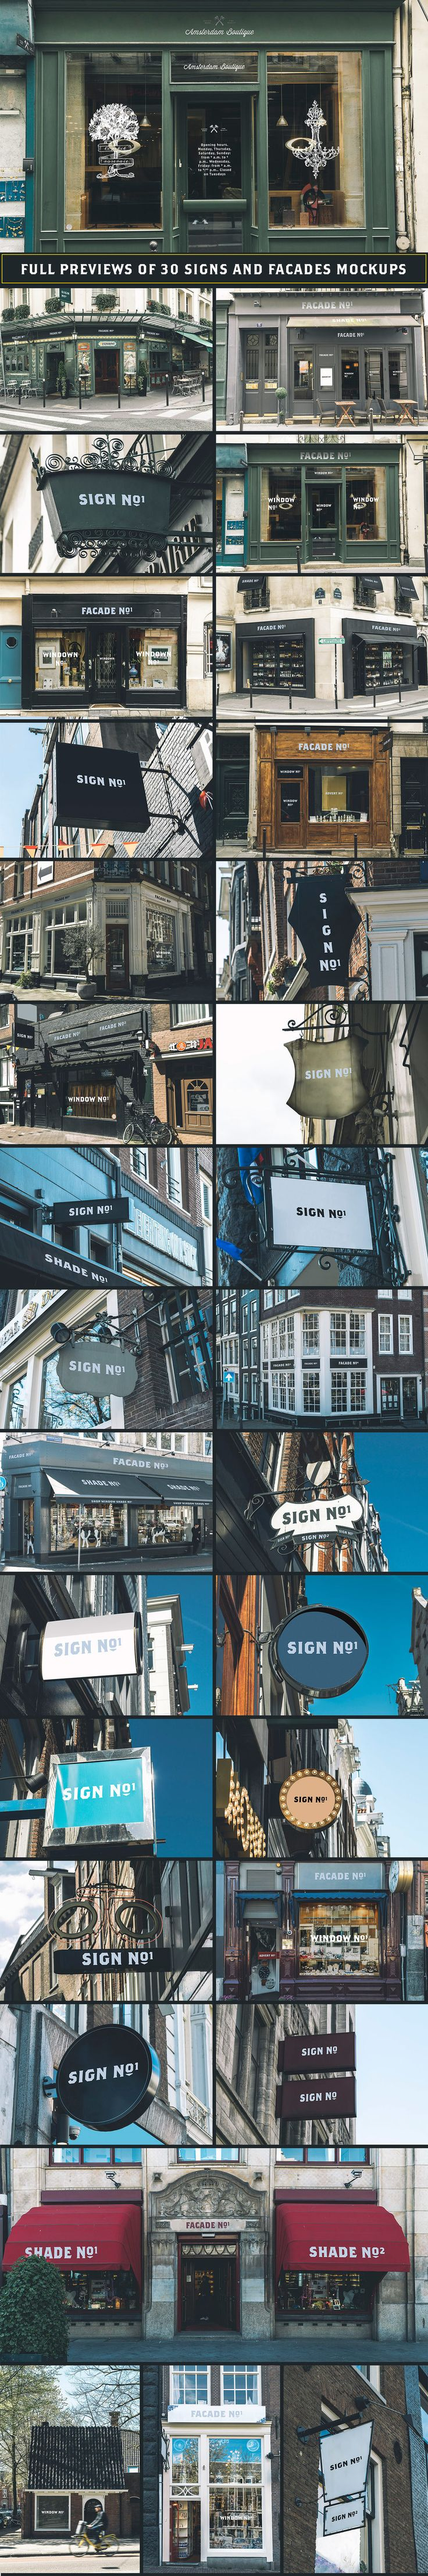 30 Sign and Facades mockups from Paris and Amsterdam